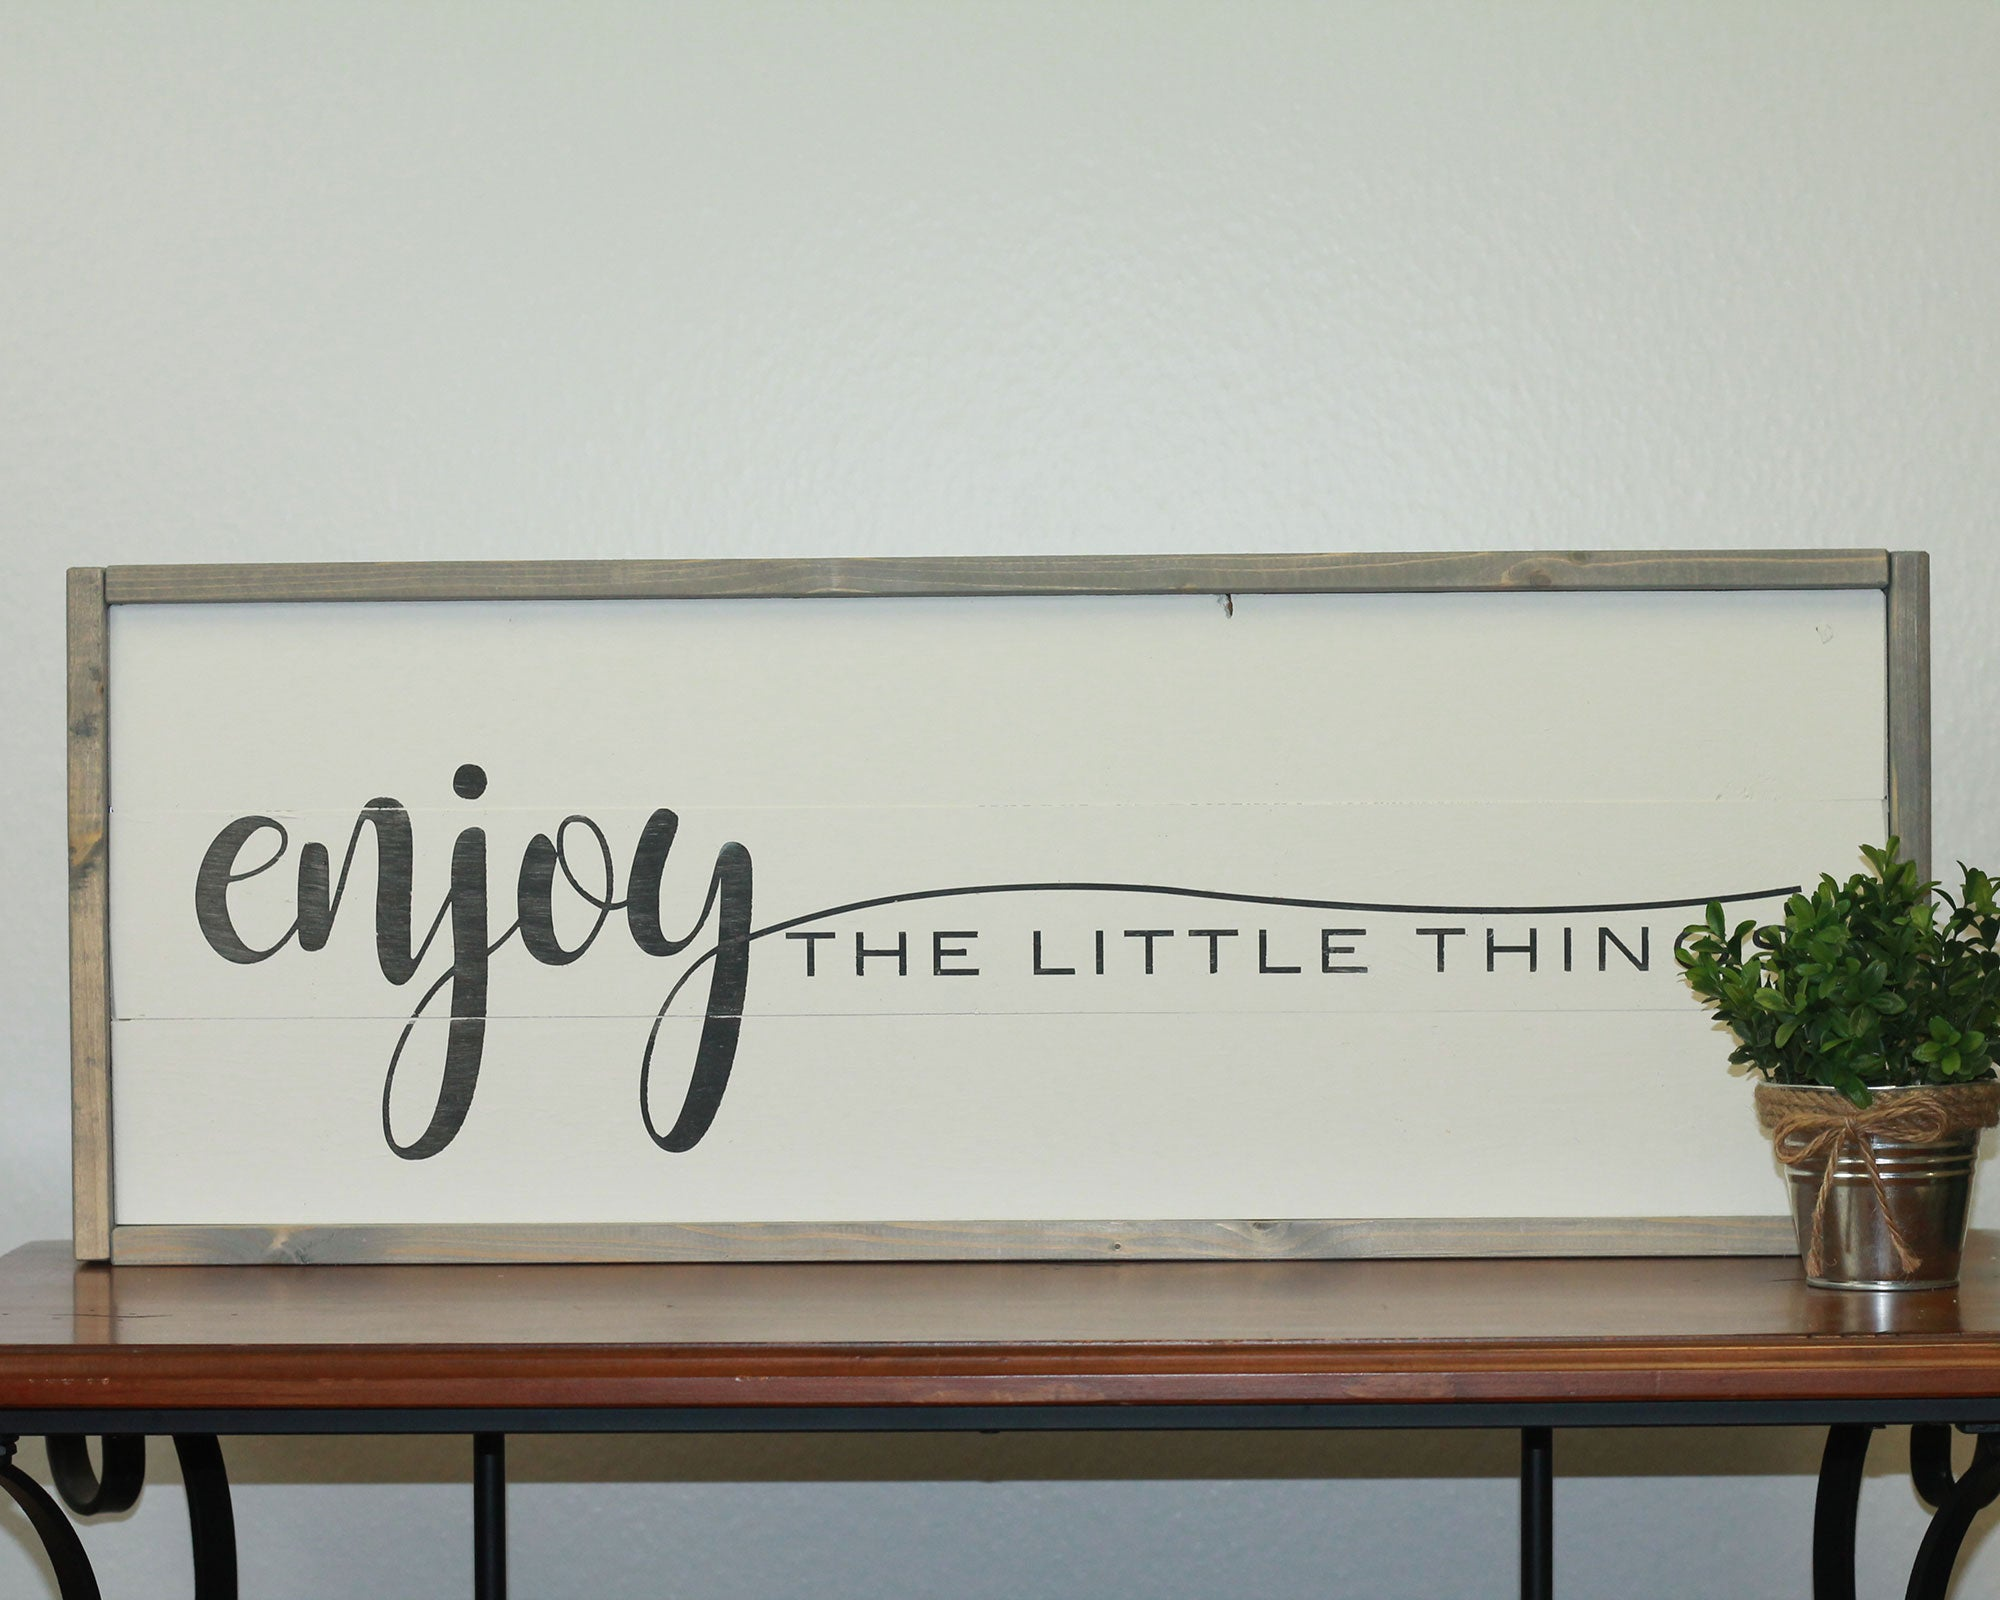 Enjoy The Little Things | 10 x 30 Vintage